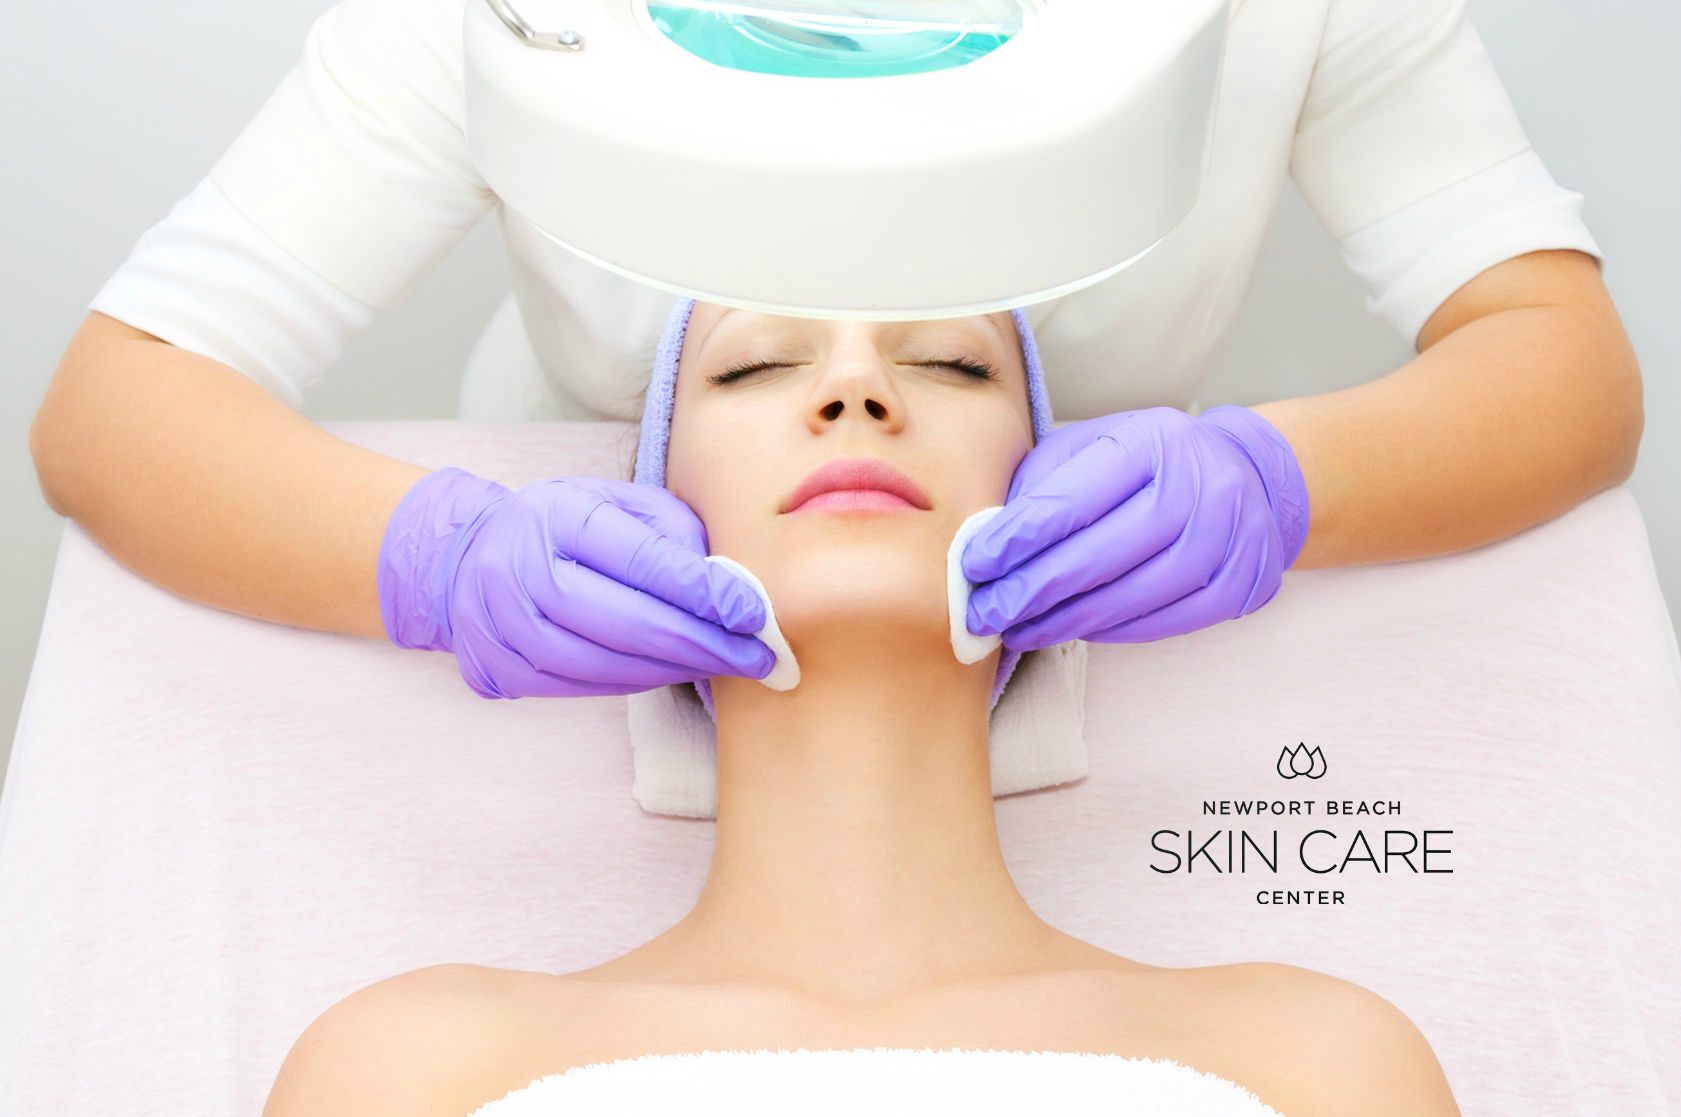 """Luxurious Clinical Facial Treatments - Targeted customized facials base on your skin concerns unlike the average """"spa"""" facial."""